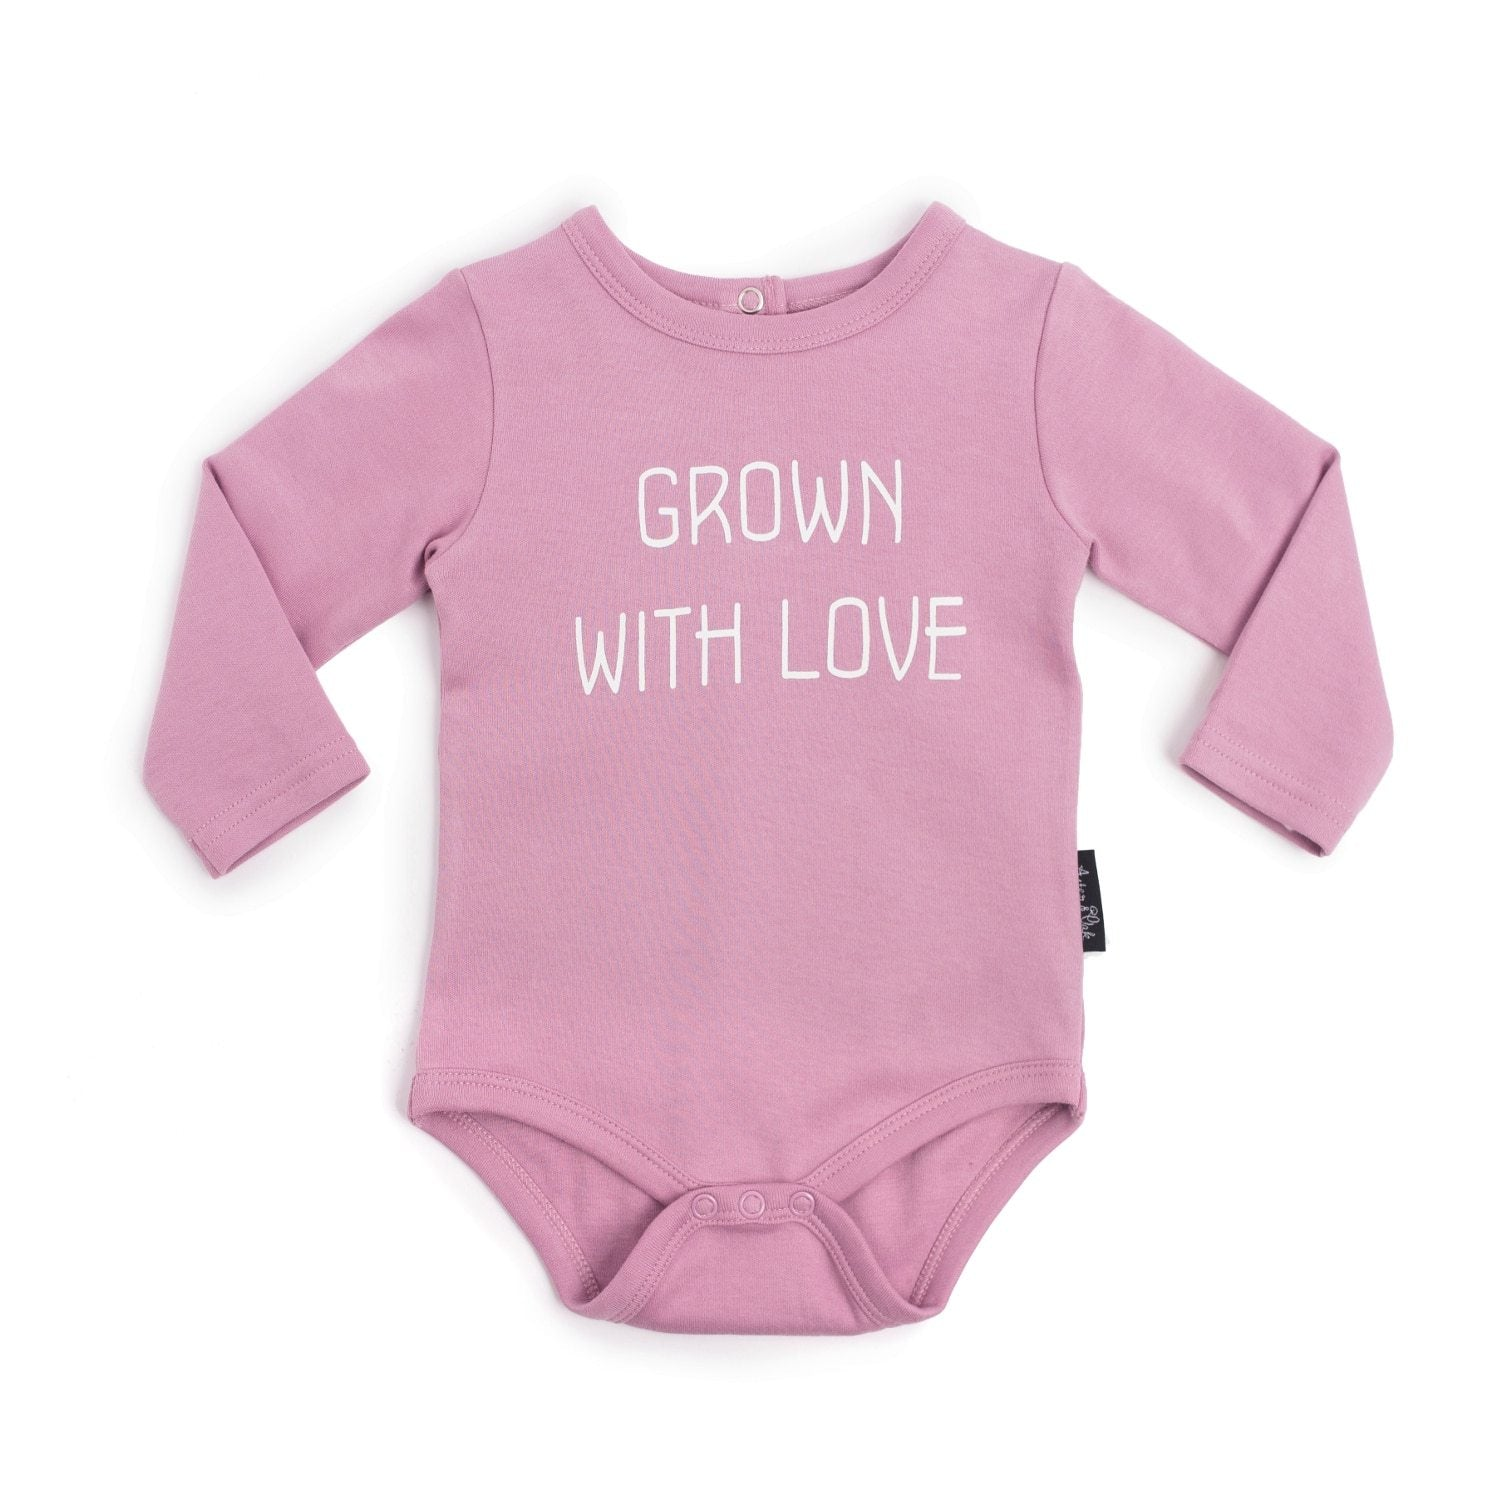 PRE-ORDER: Aster & Oak Organic Cotton Grown with Love Onesie (Rose) - Naked Baby Eco Boutique